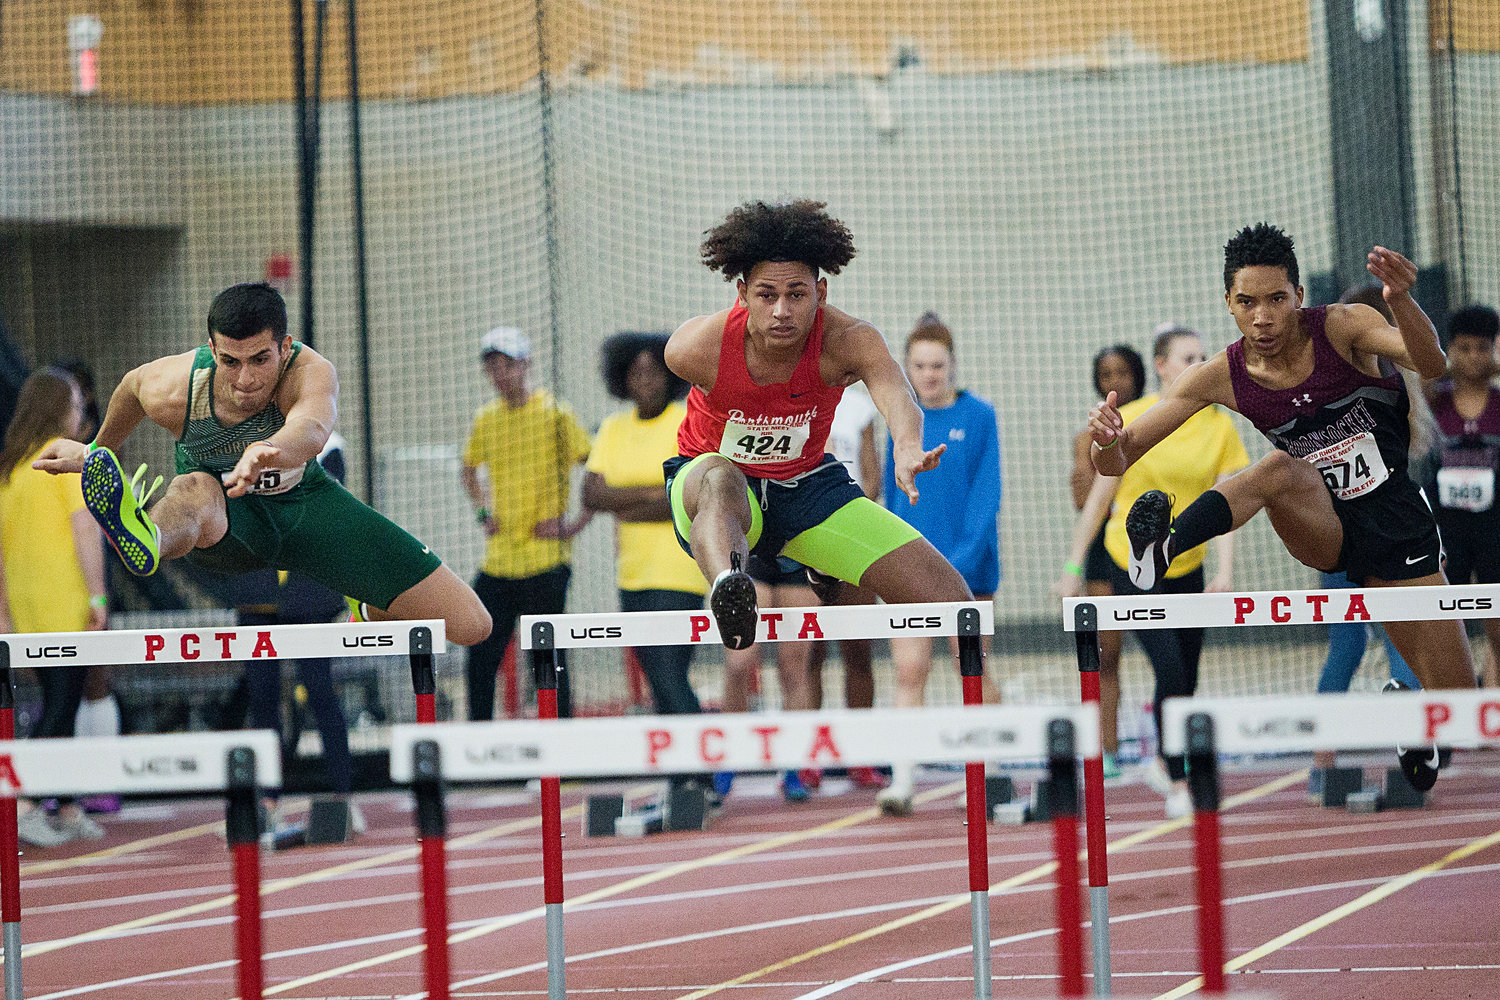 Jarlyn Soler competes in the boys' 55-meter hurdle event.